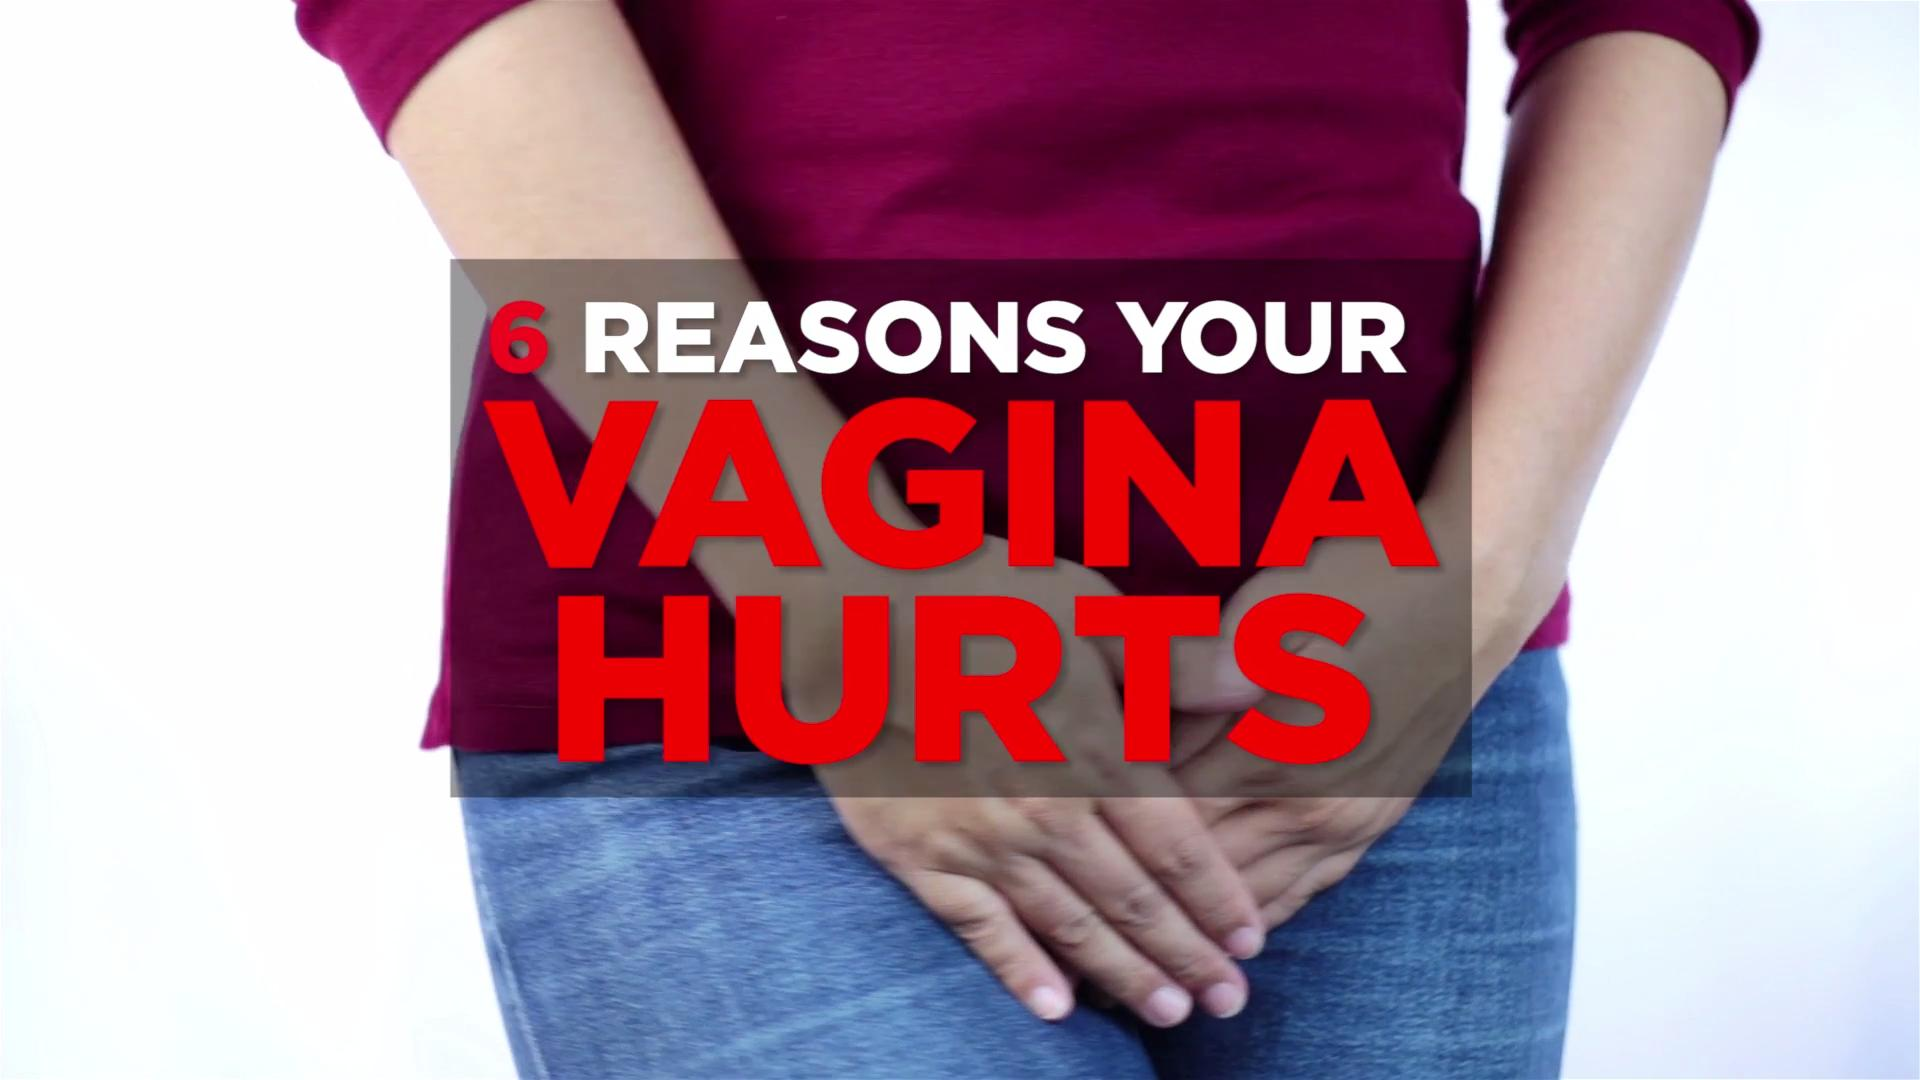 There are solutions for vaginal dryness